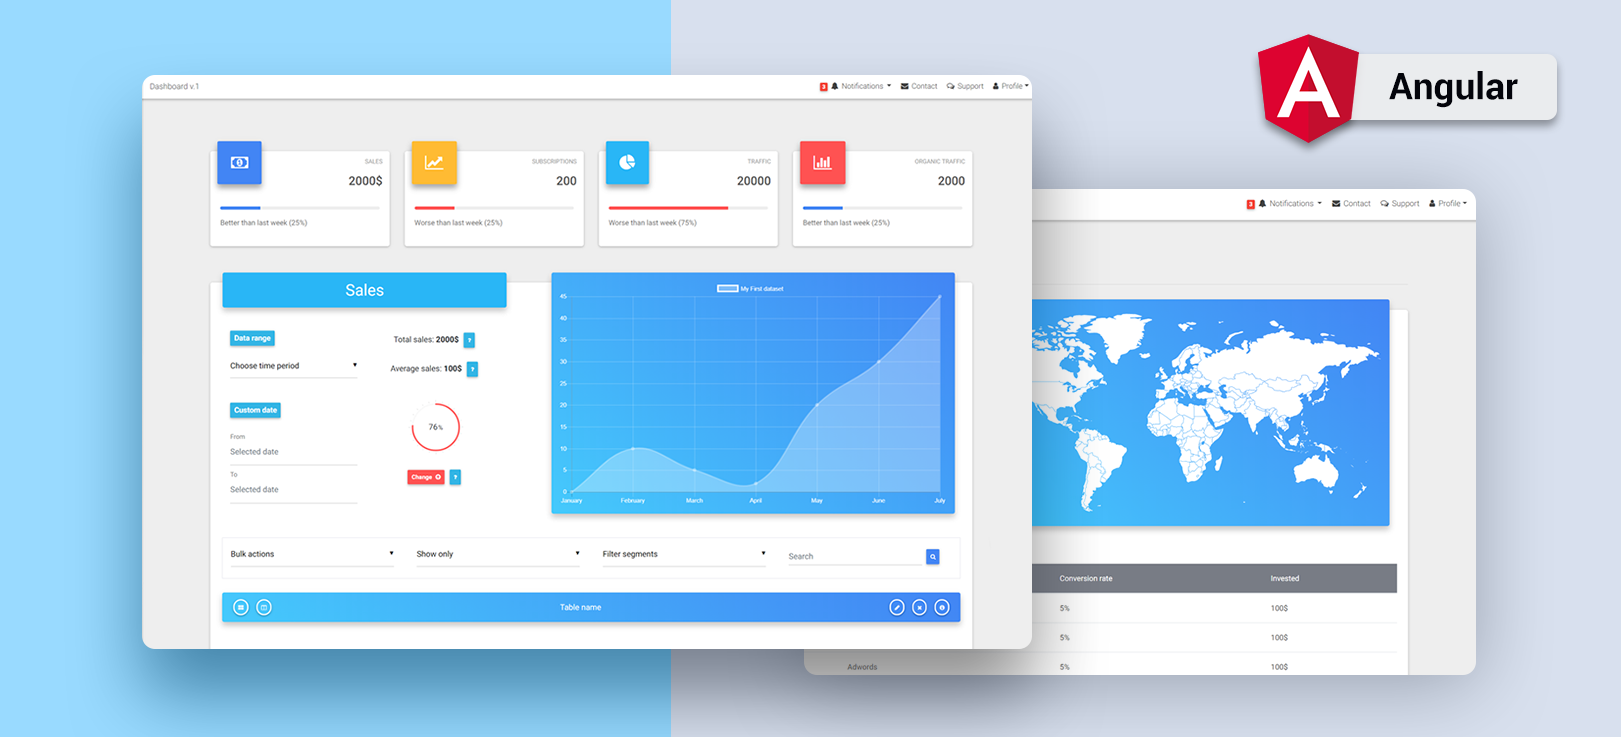 Angular Admin Dashboard Template - Angular 6 & Material Design